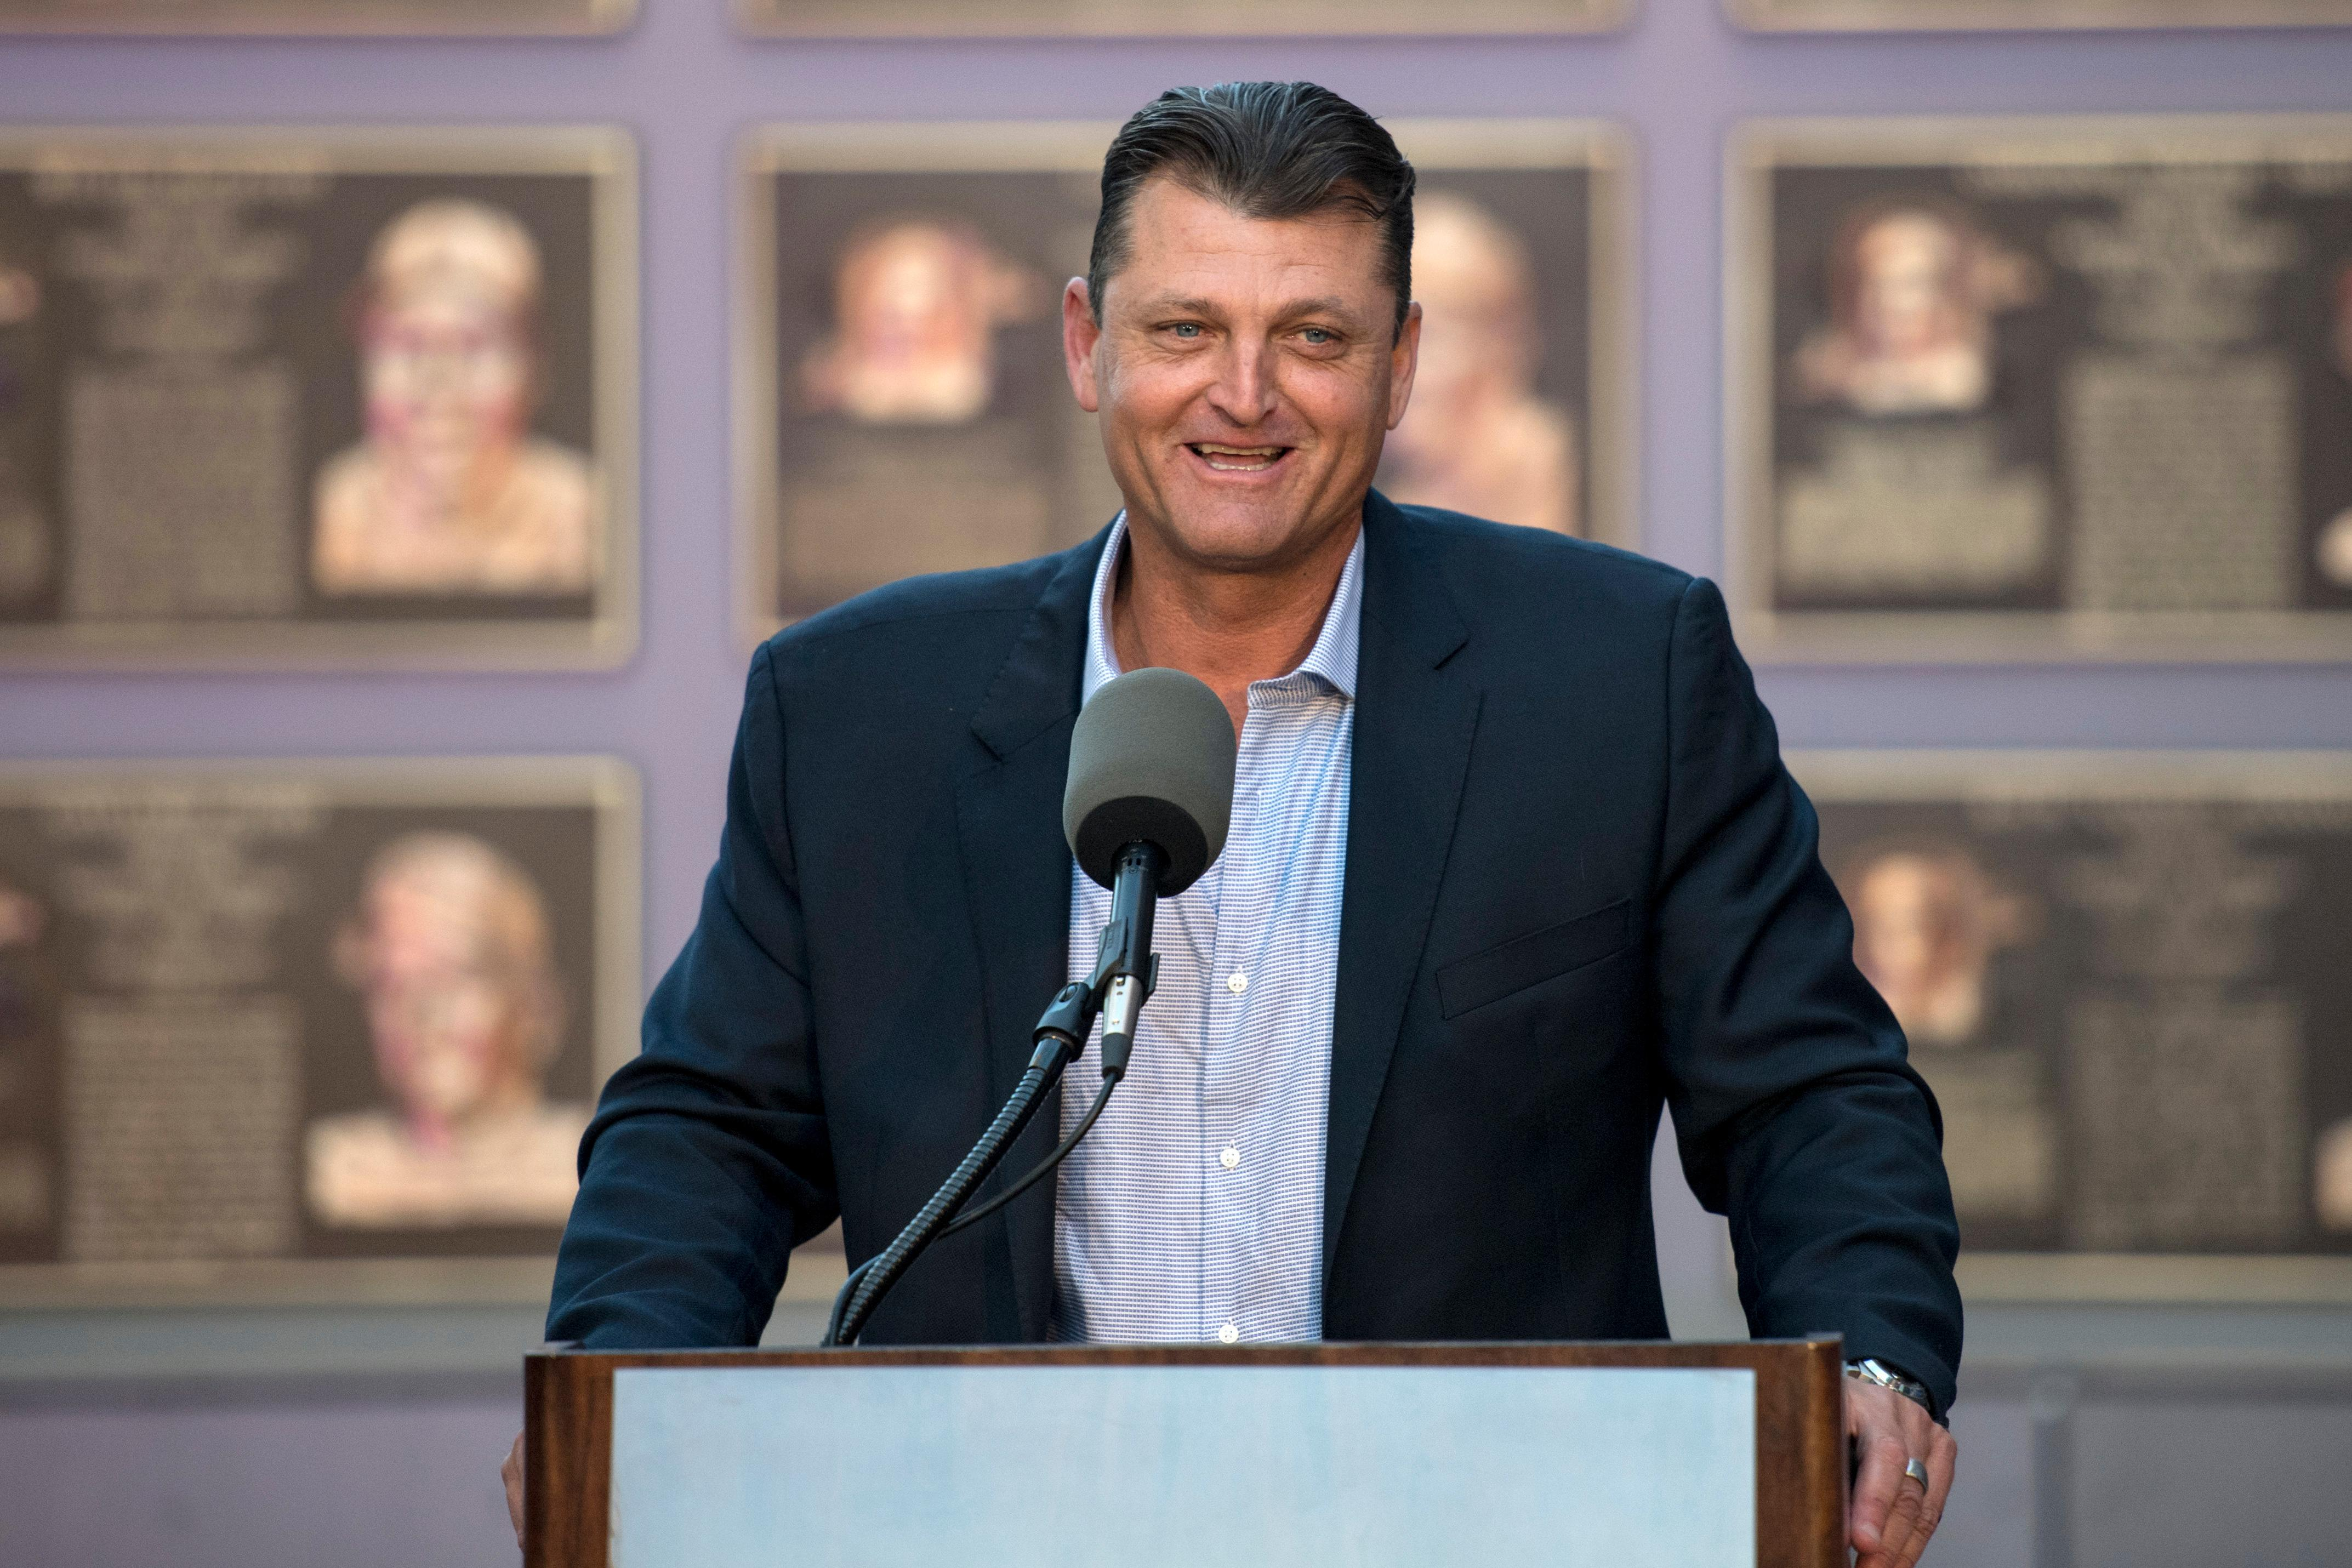 Former San Diego Padres closer Trevor Hoffman speaks during a news conference Wednesday, Jan. 24, 2018, in San Diego after he was elected to the baseball Hall of Fame. (AP Photo/Kyusung Gong)